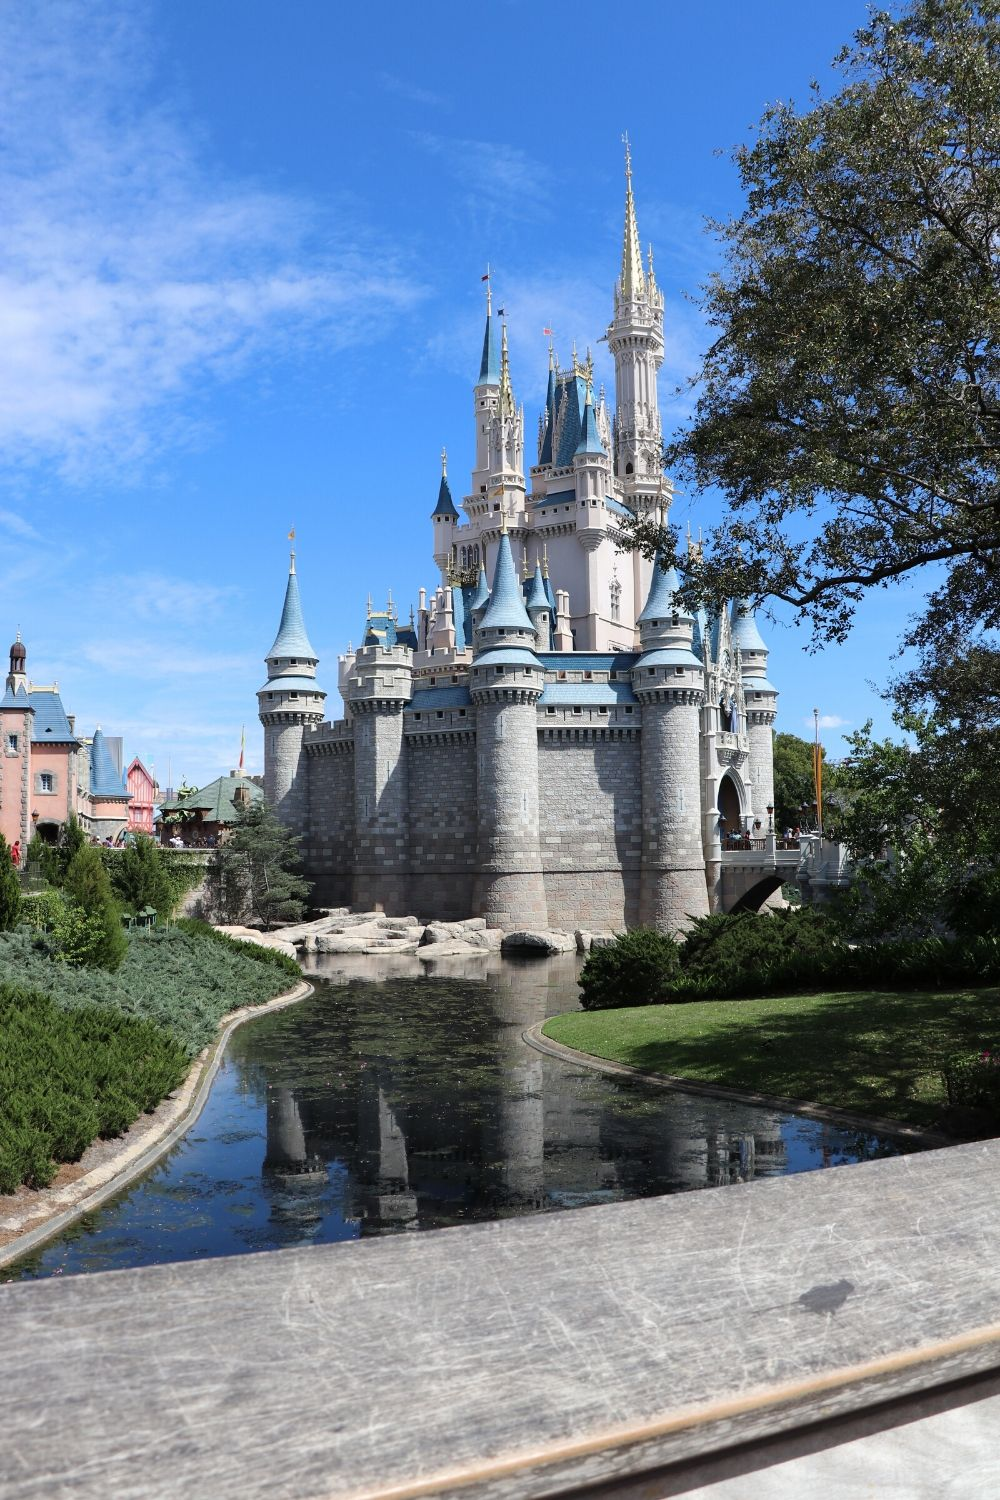 Planning a Disney vacation doesn't have to be difficult. Check out these five easy things that you can do to make your Disney trip planning completely painless.